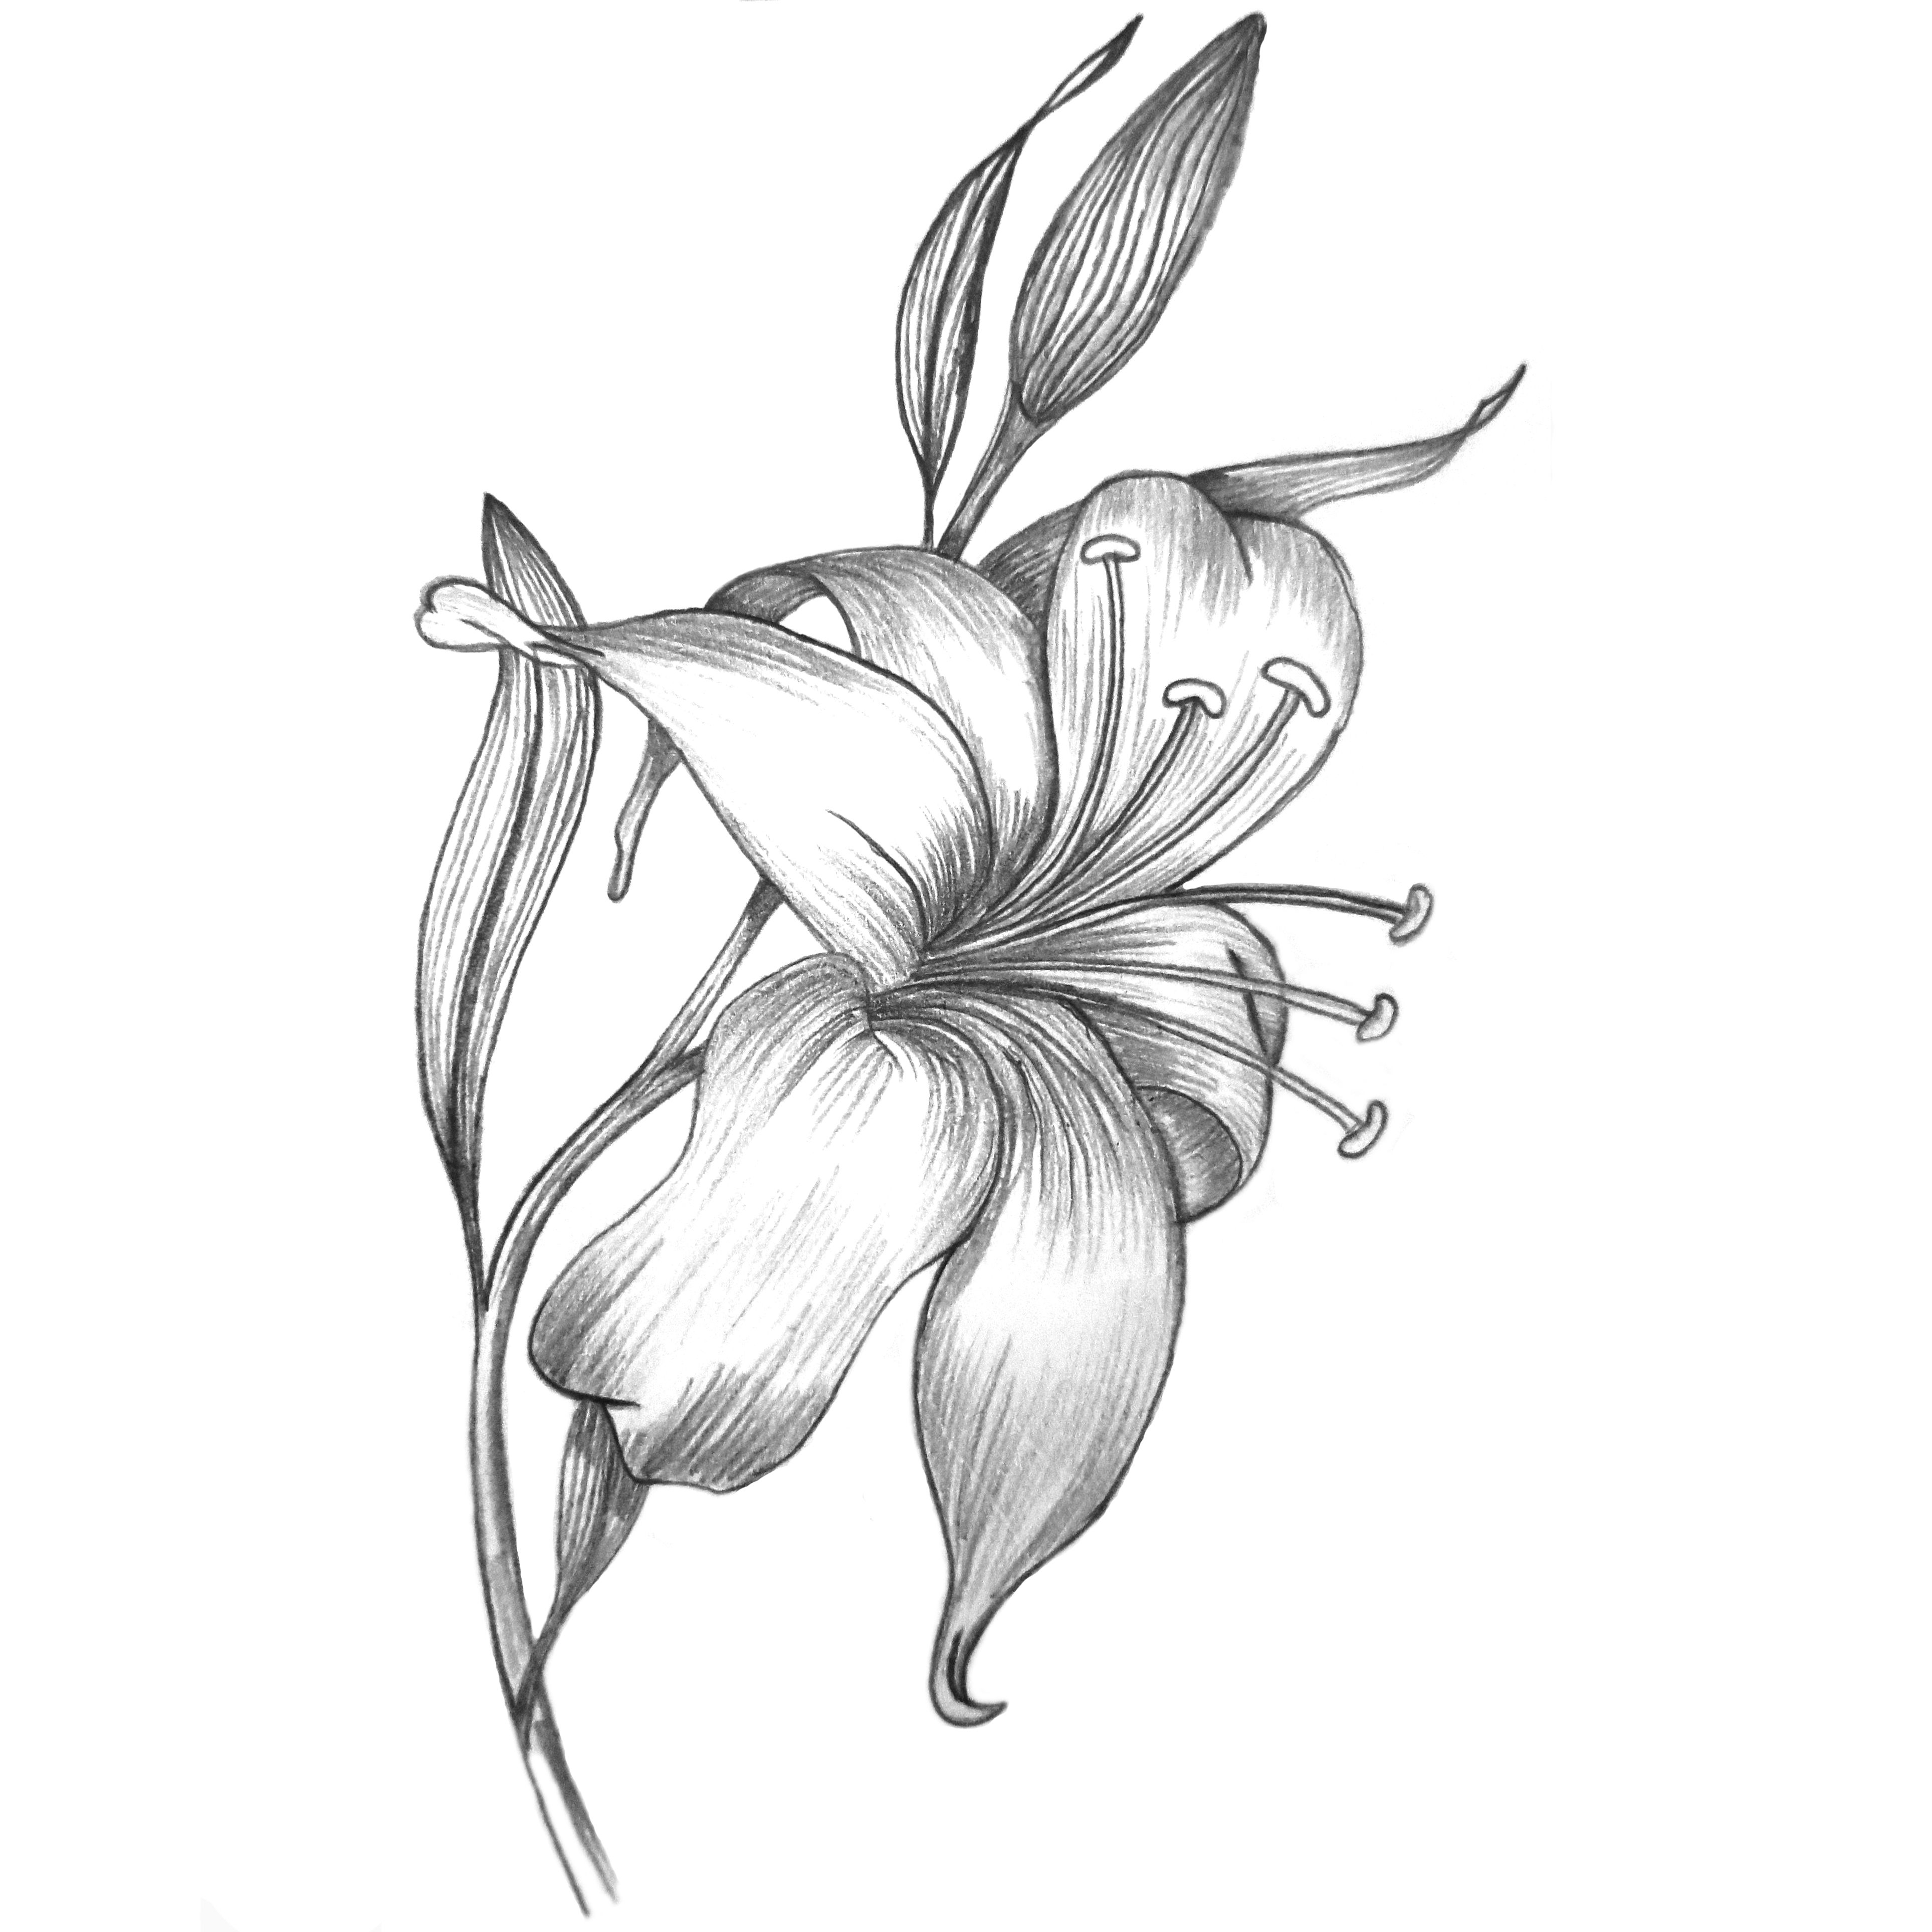 Line Drawing Lily Flower : Pencil sketch lily flower mespilia drawing